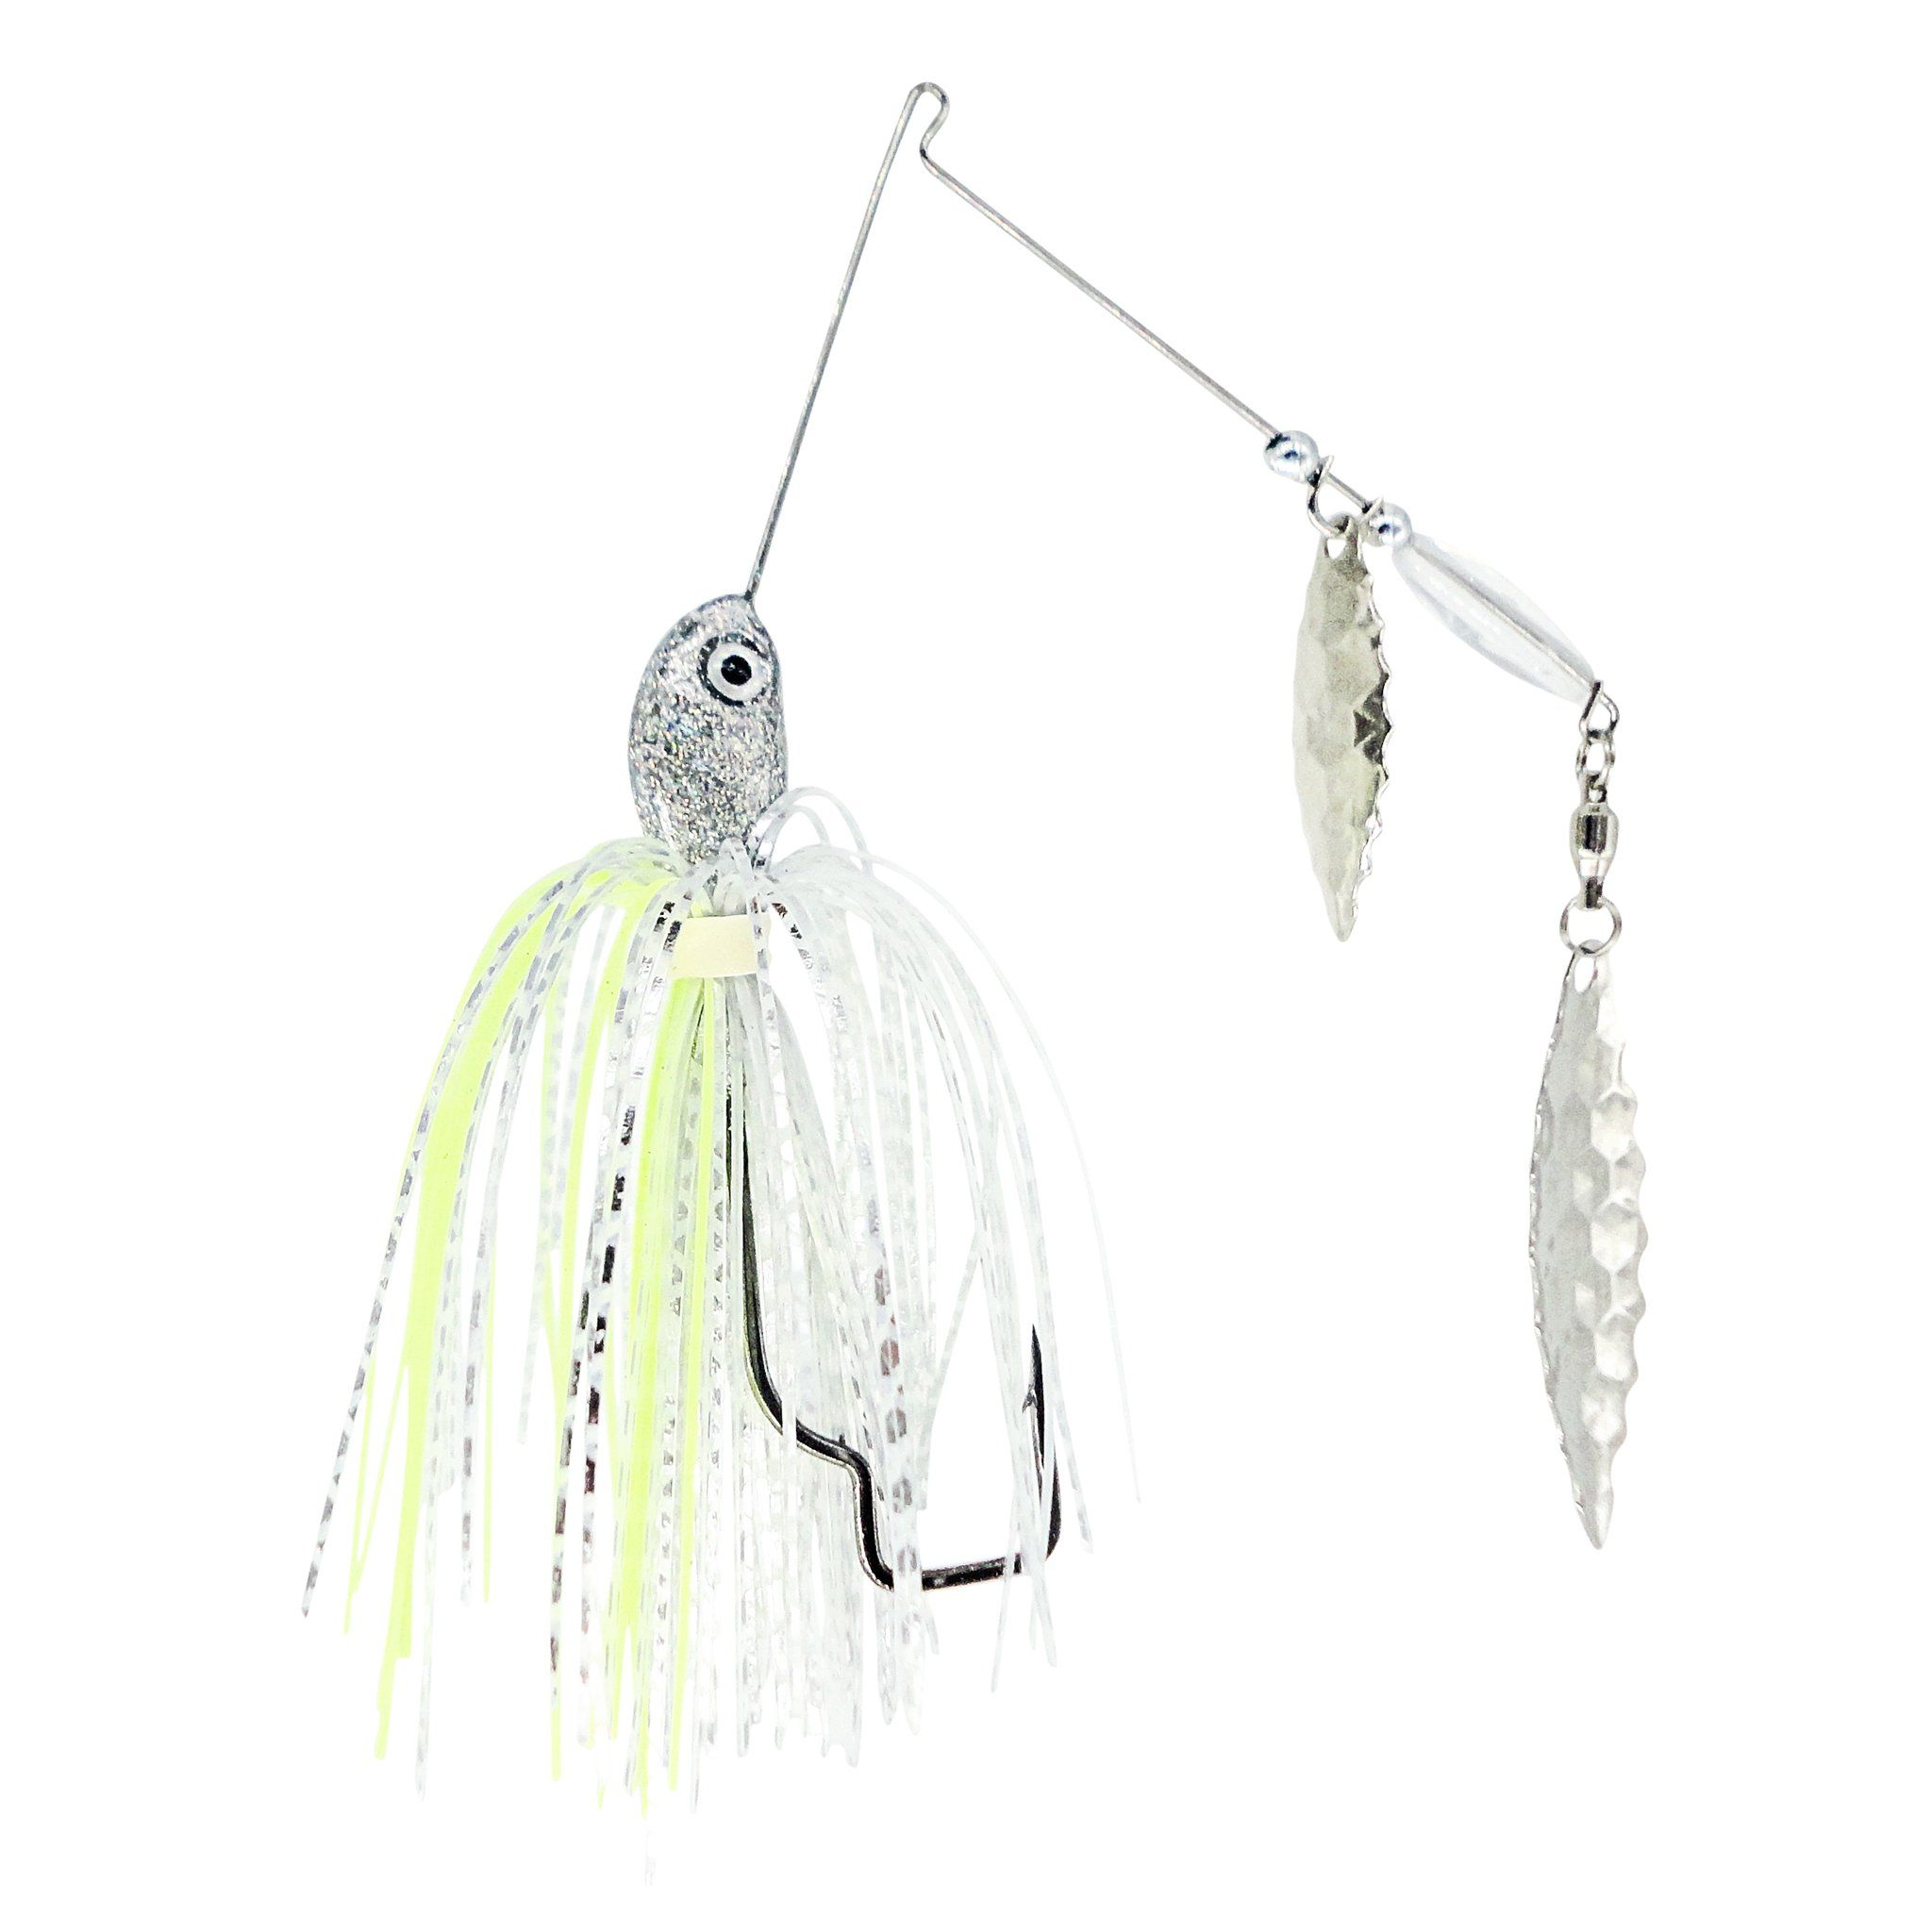 Rock-N-Reel Tournament-Series Spinner Bait Custom Trapper Tackle LLC 3/8oz silver